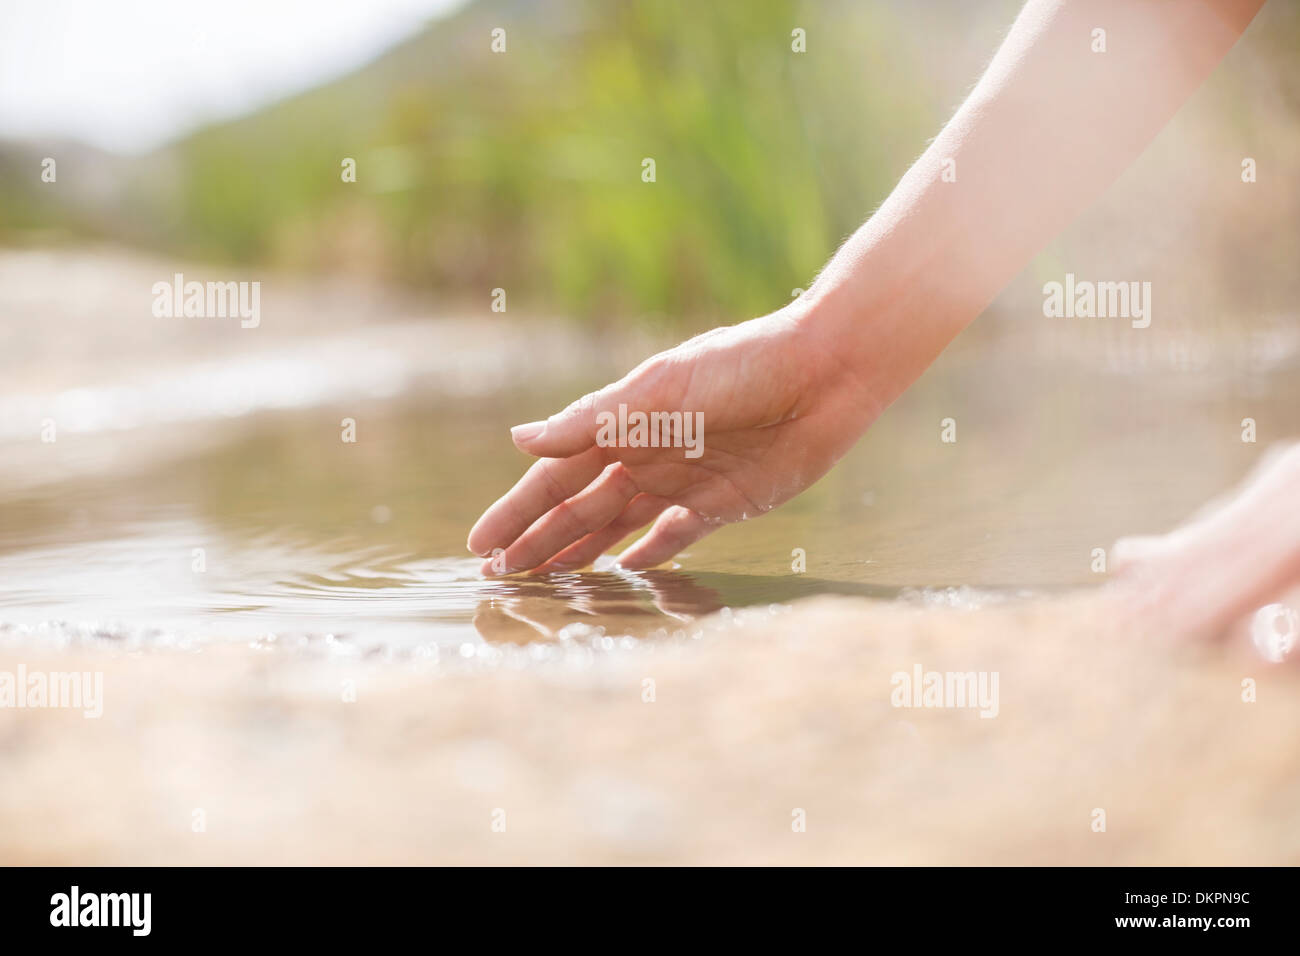 Woman dipping fingers in rural pond - Stock Image